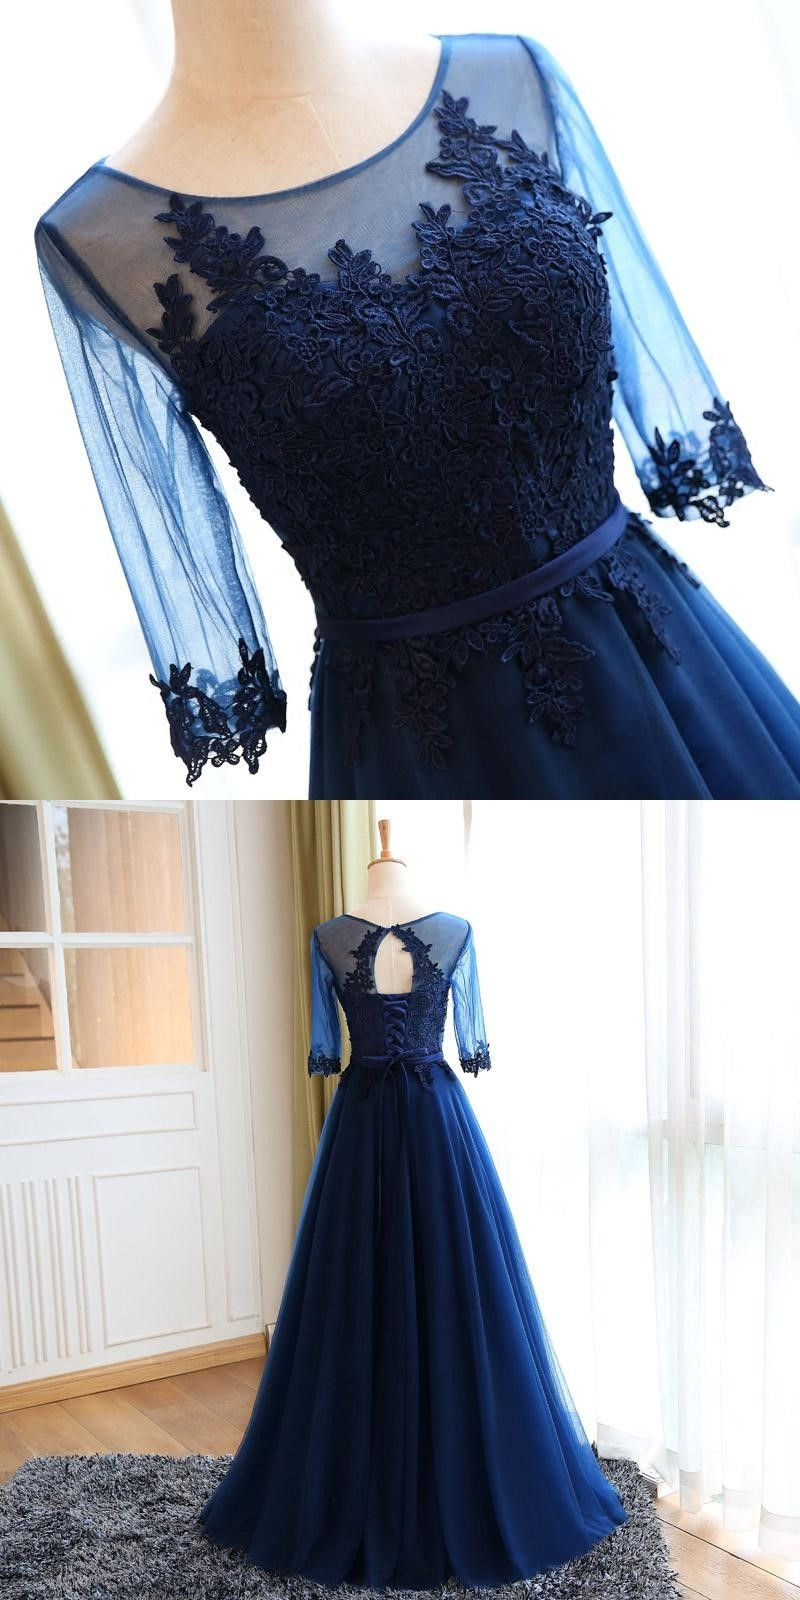 Aline round neck navy blue tulle prom dress with appliques in